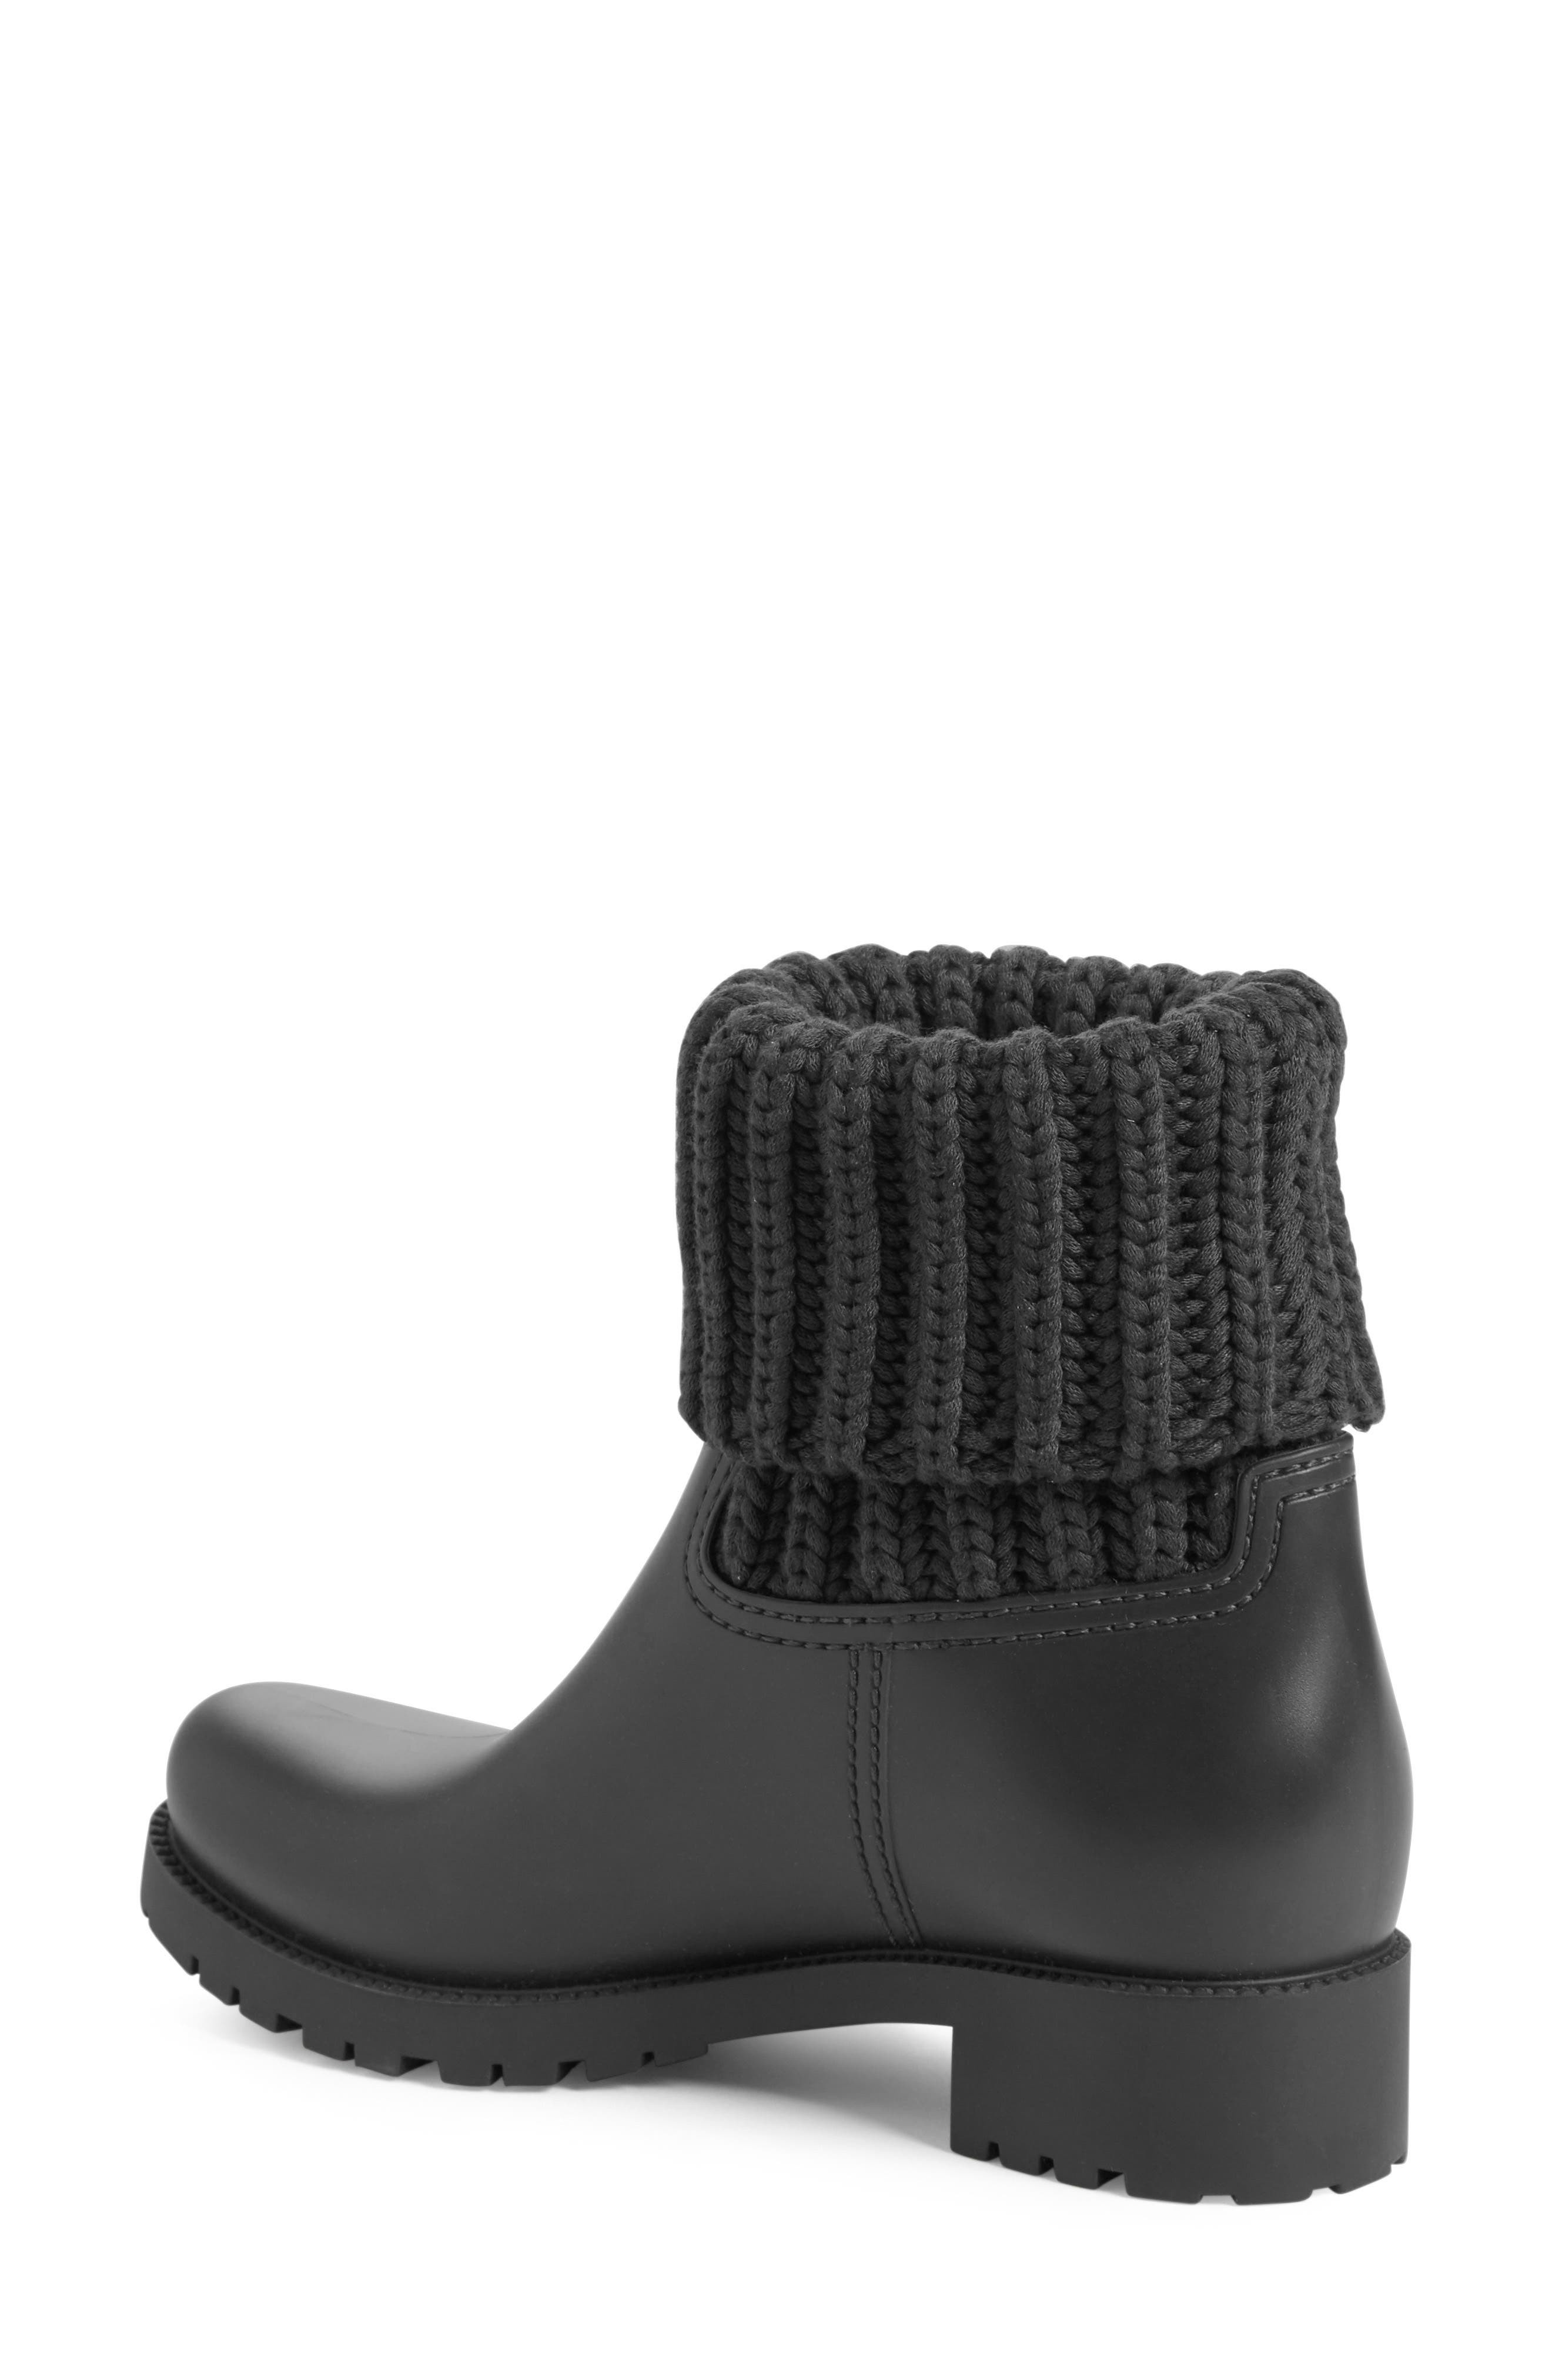 Ginette Knit Cuff Leather Rain Boot,                             Alternate thumbnail 2, color,                             002